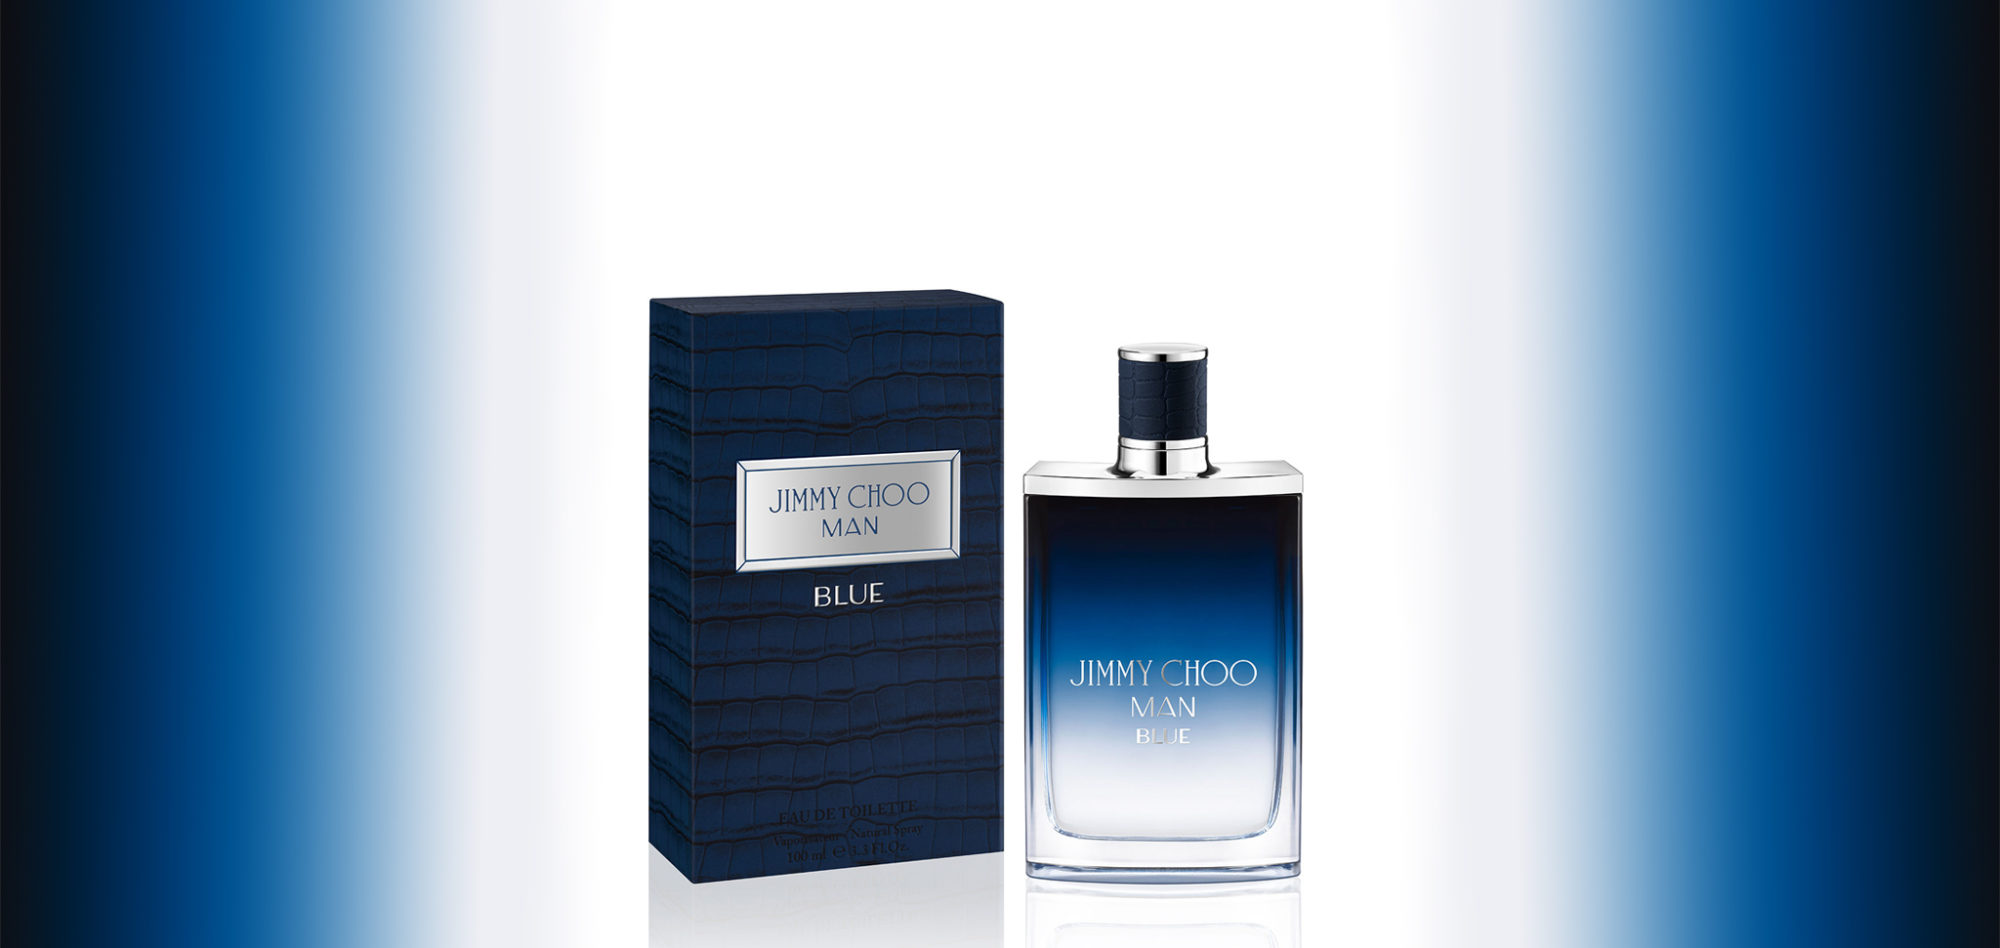 Jimmy Choo Man Blue Fragrance at Frontlinestyle